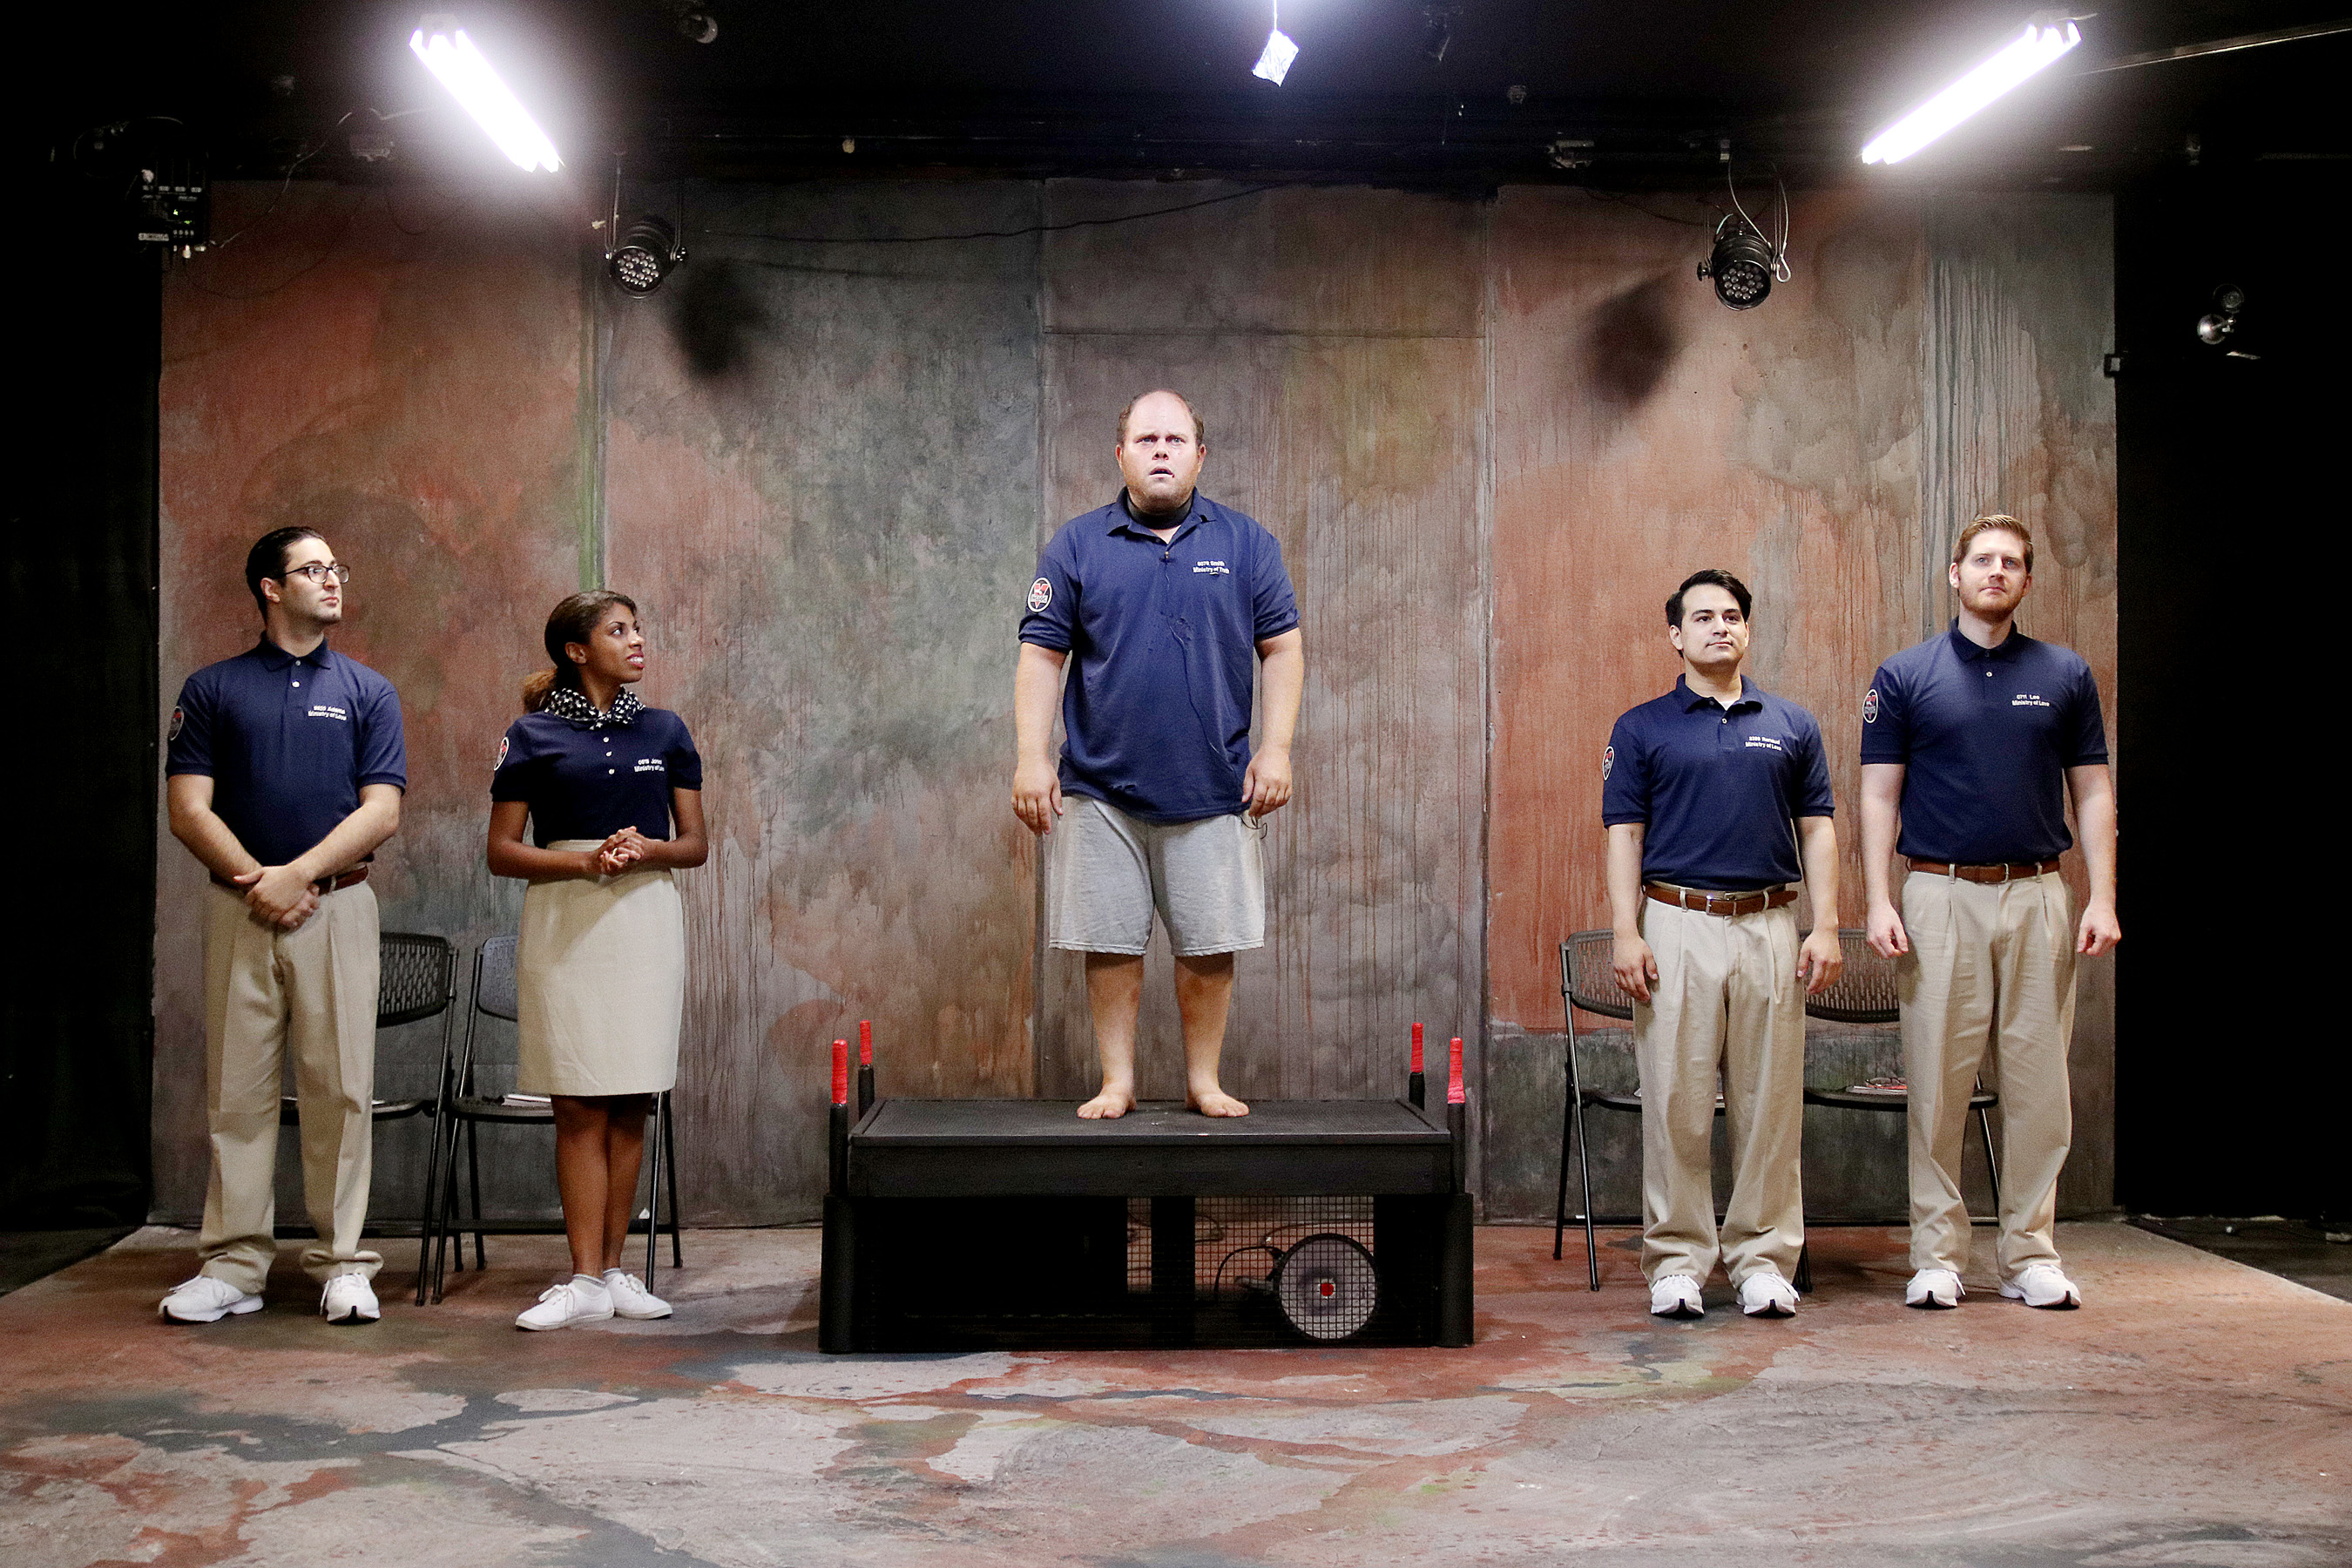 BWW Review: 1984 is Doubleplusungood at Obsidian Theater